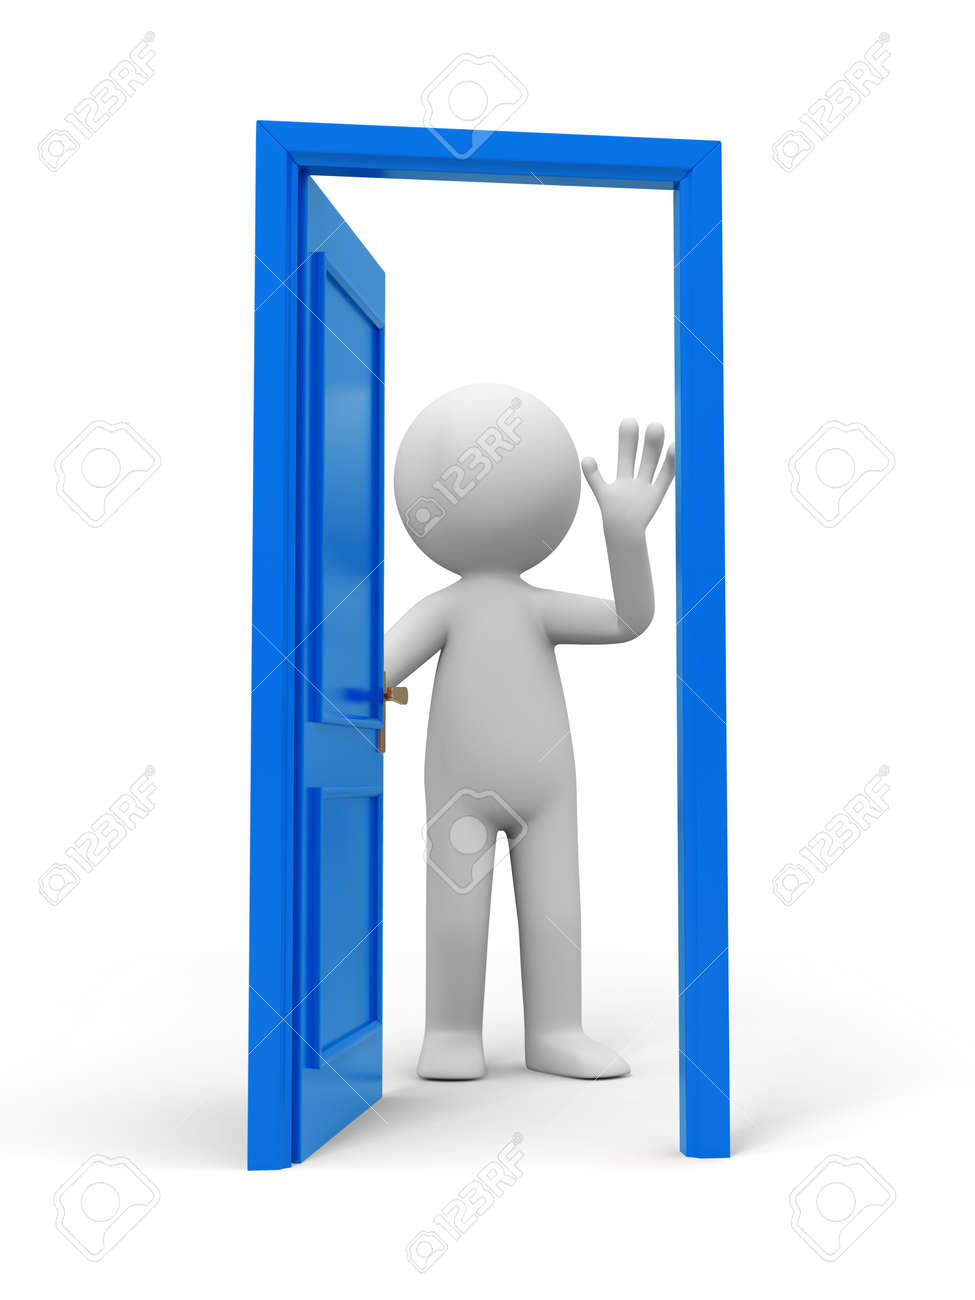 Door people and a opened door Stock Photo - 15457715  sc 1 st  123RF Stock Photos & Door People And A Opened Door Stock Photo Picture And Royalty ... pezcame.com